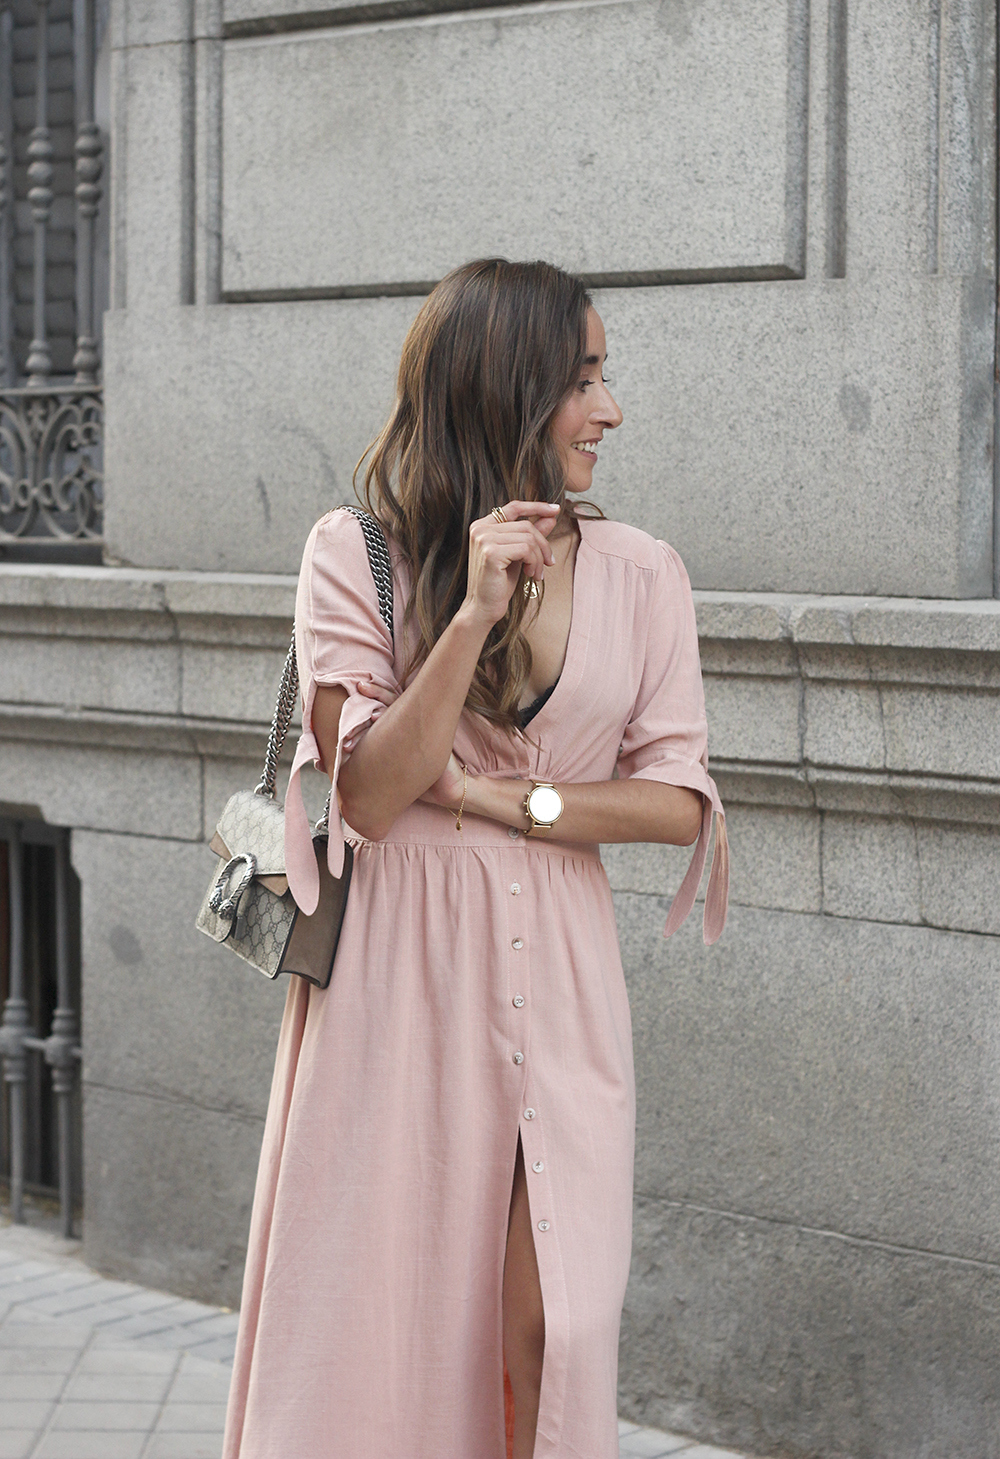 pink midi dress mules gucci bag outfit street style 201812